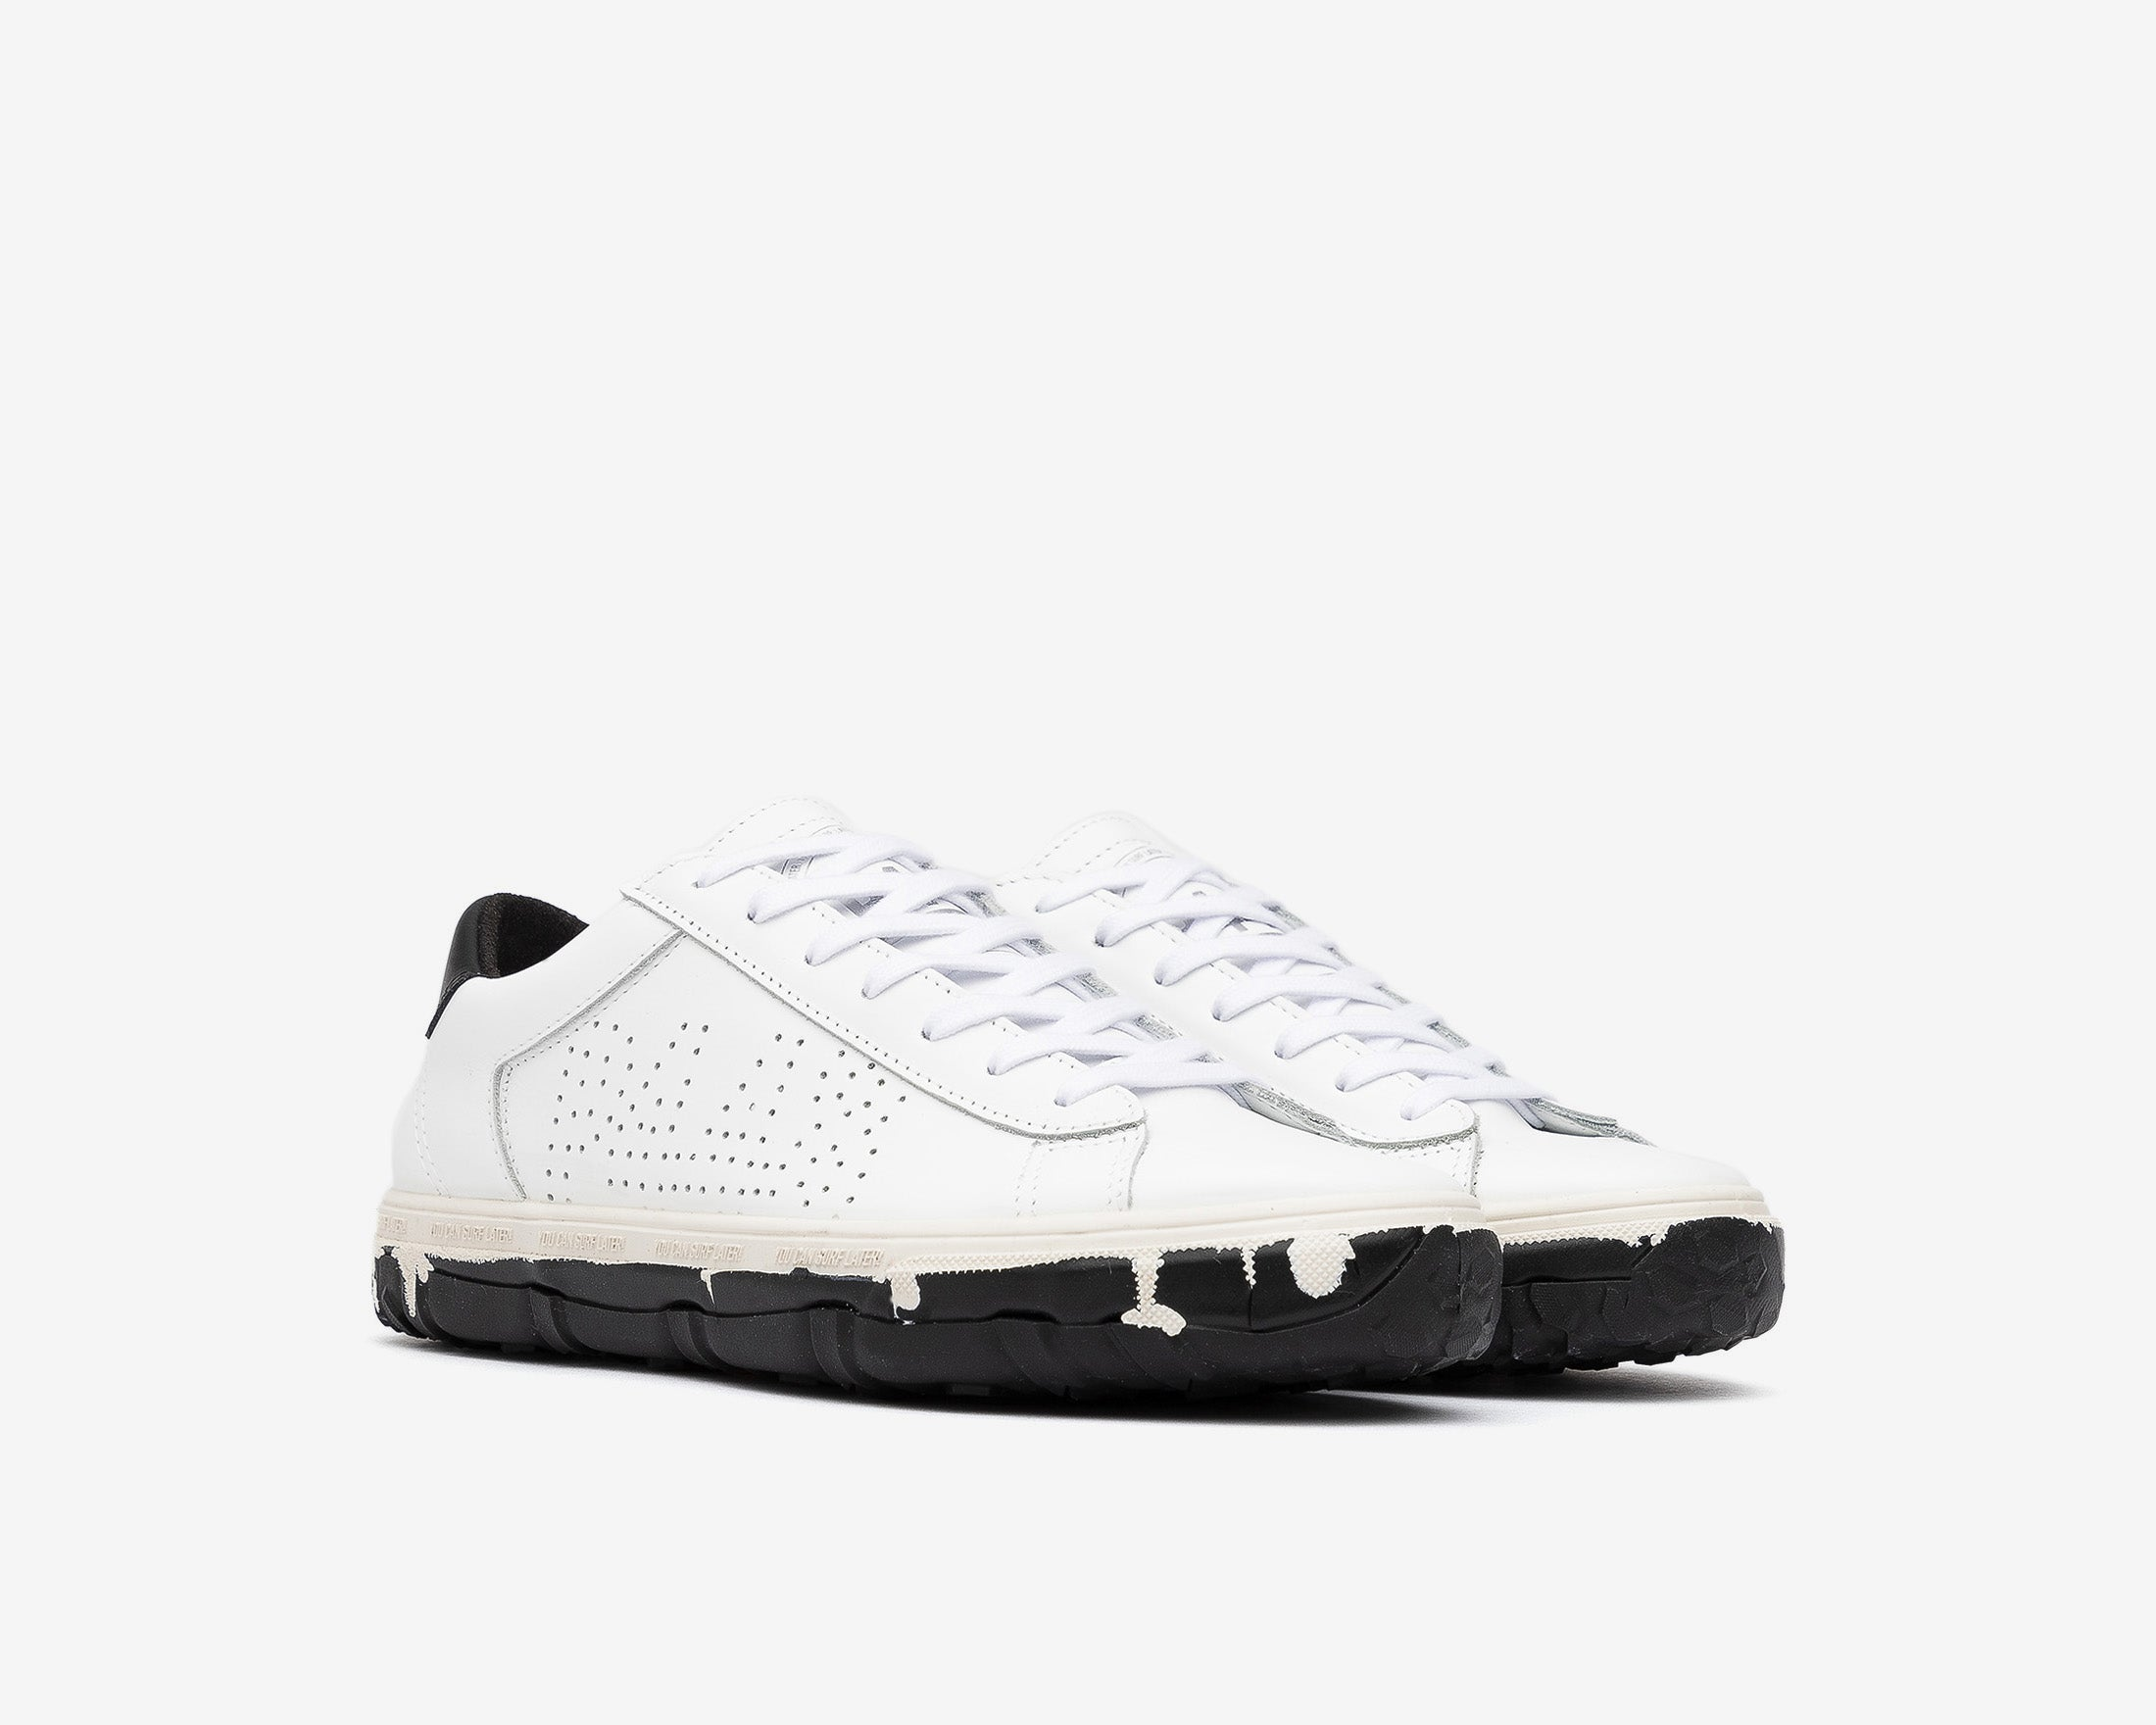 Y.C.S.L. Vibram Low-Top Sneaker in White/Black - Side